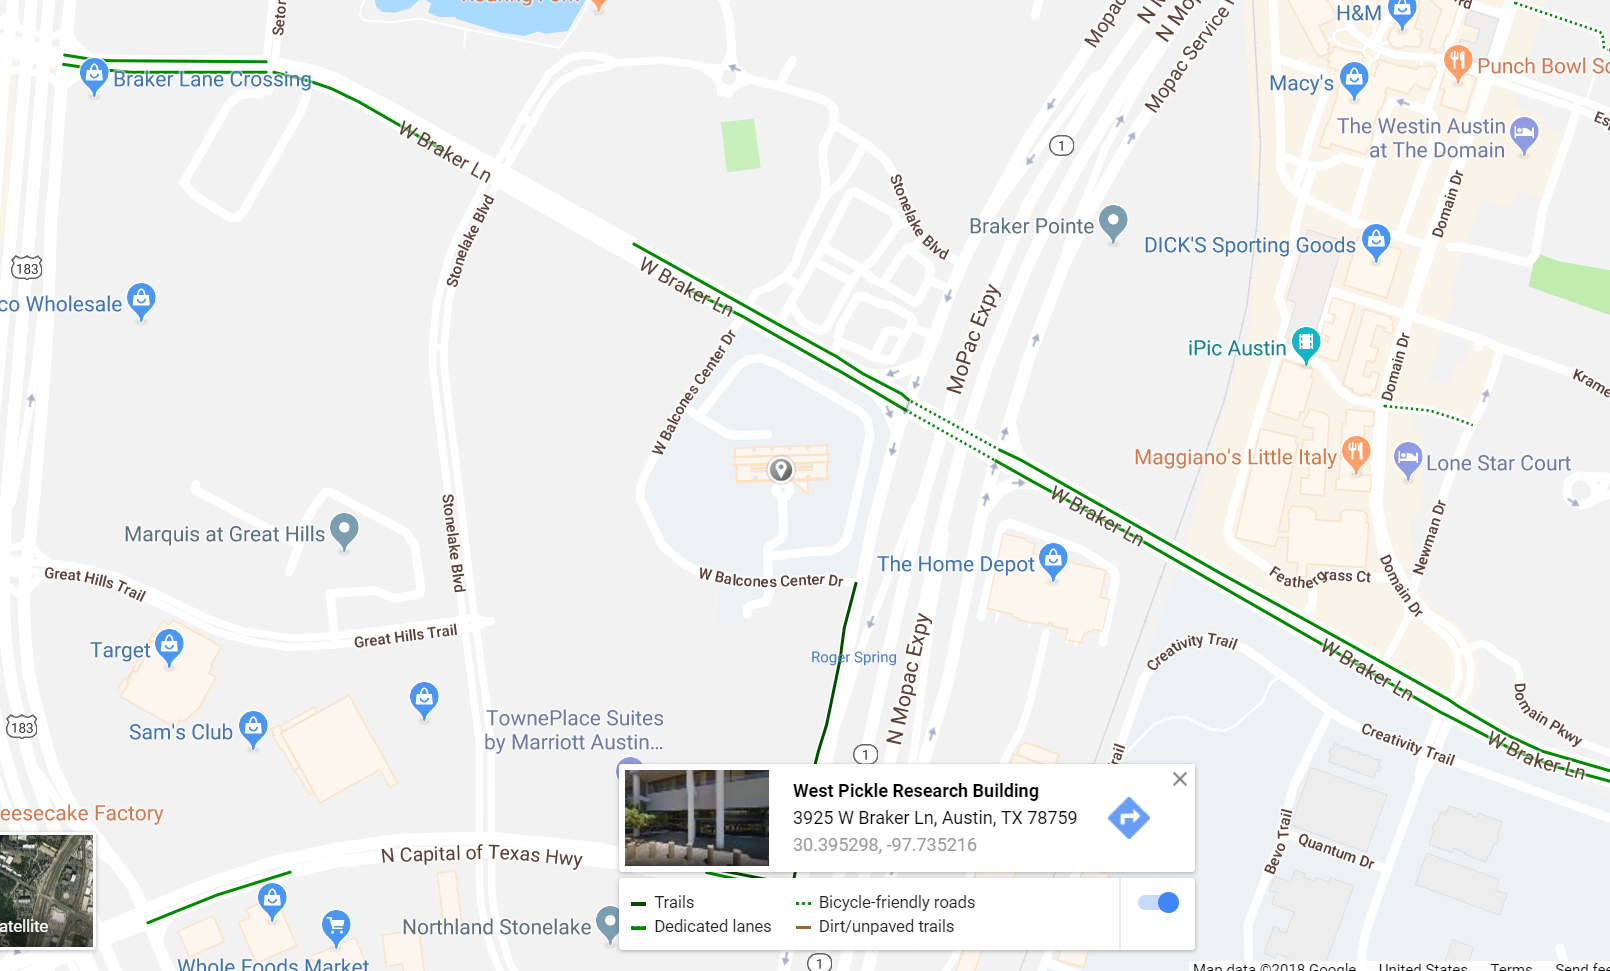 Google Map showing bicycle-friendly paths near the West Pickle Research Building